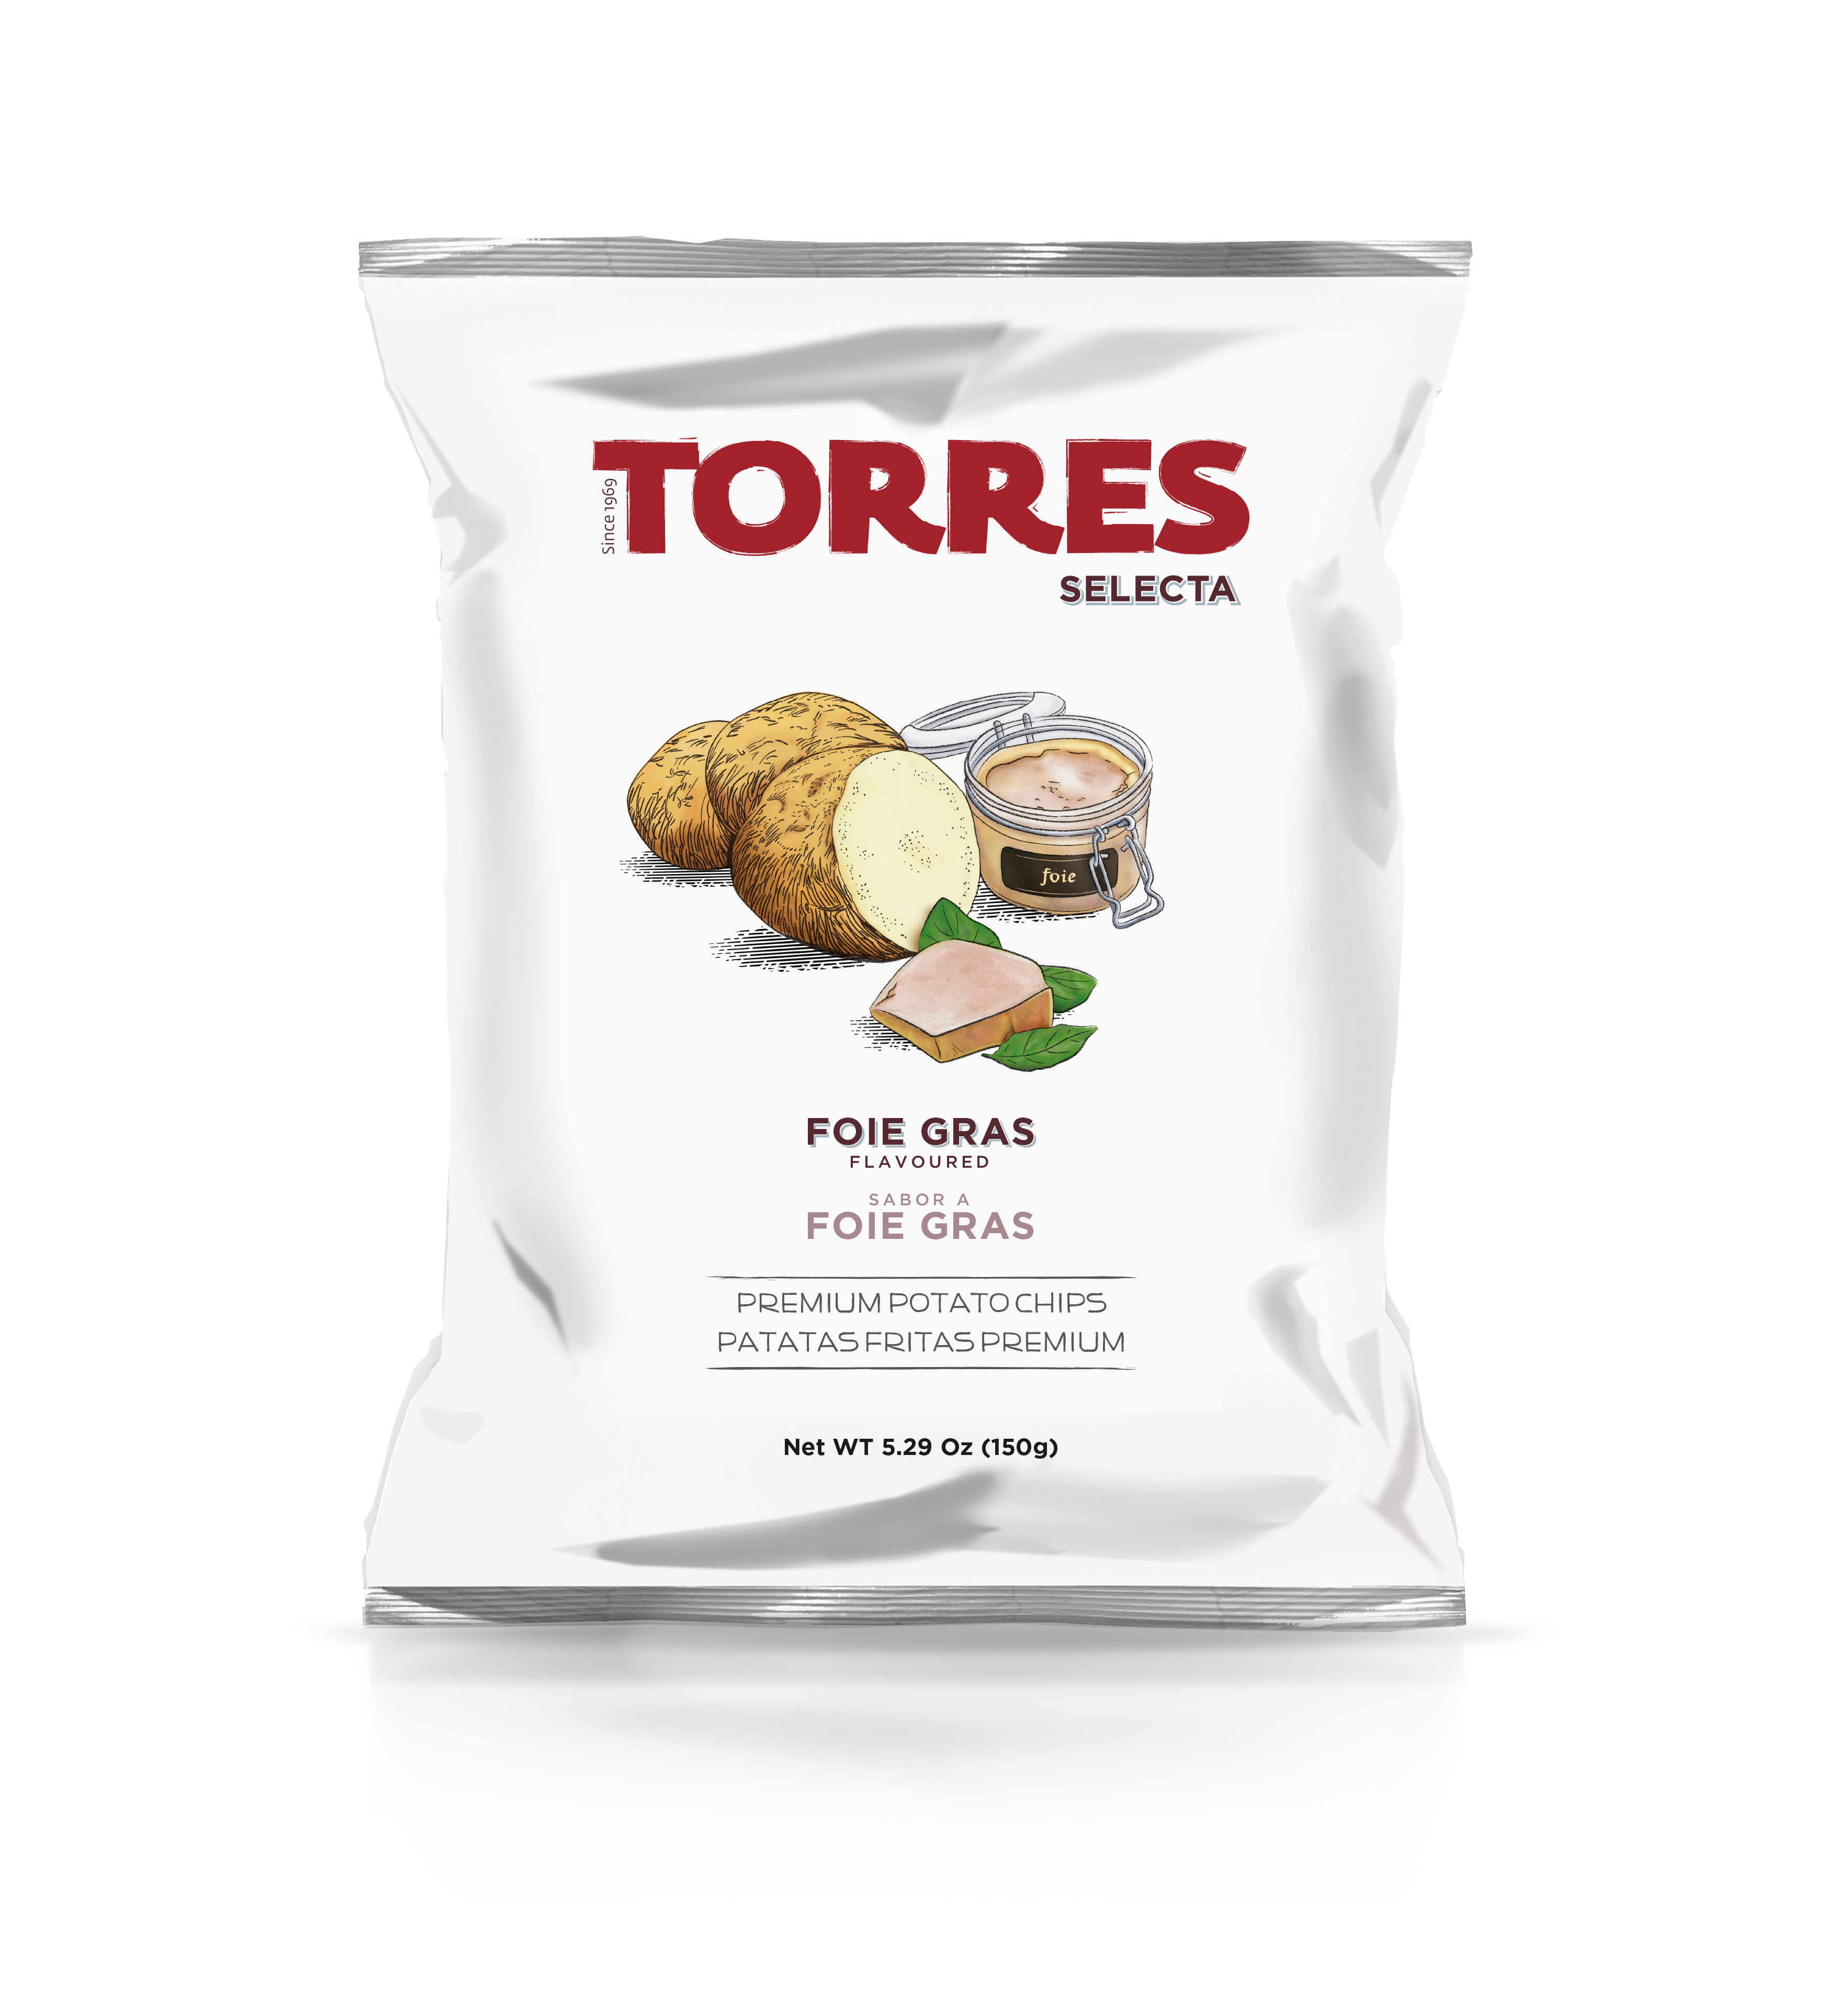 Foie Gras flavoured Potato Chips